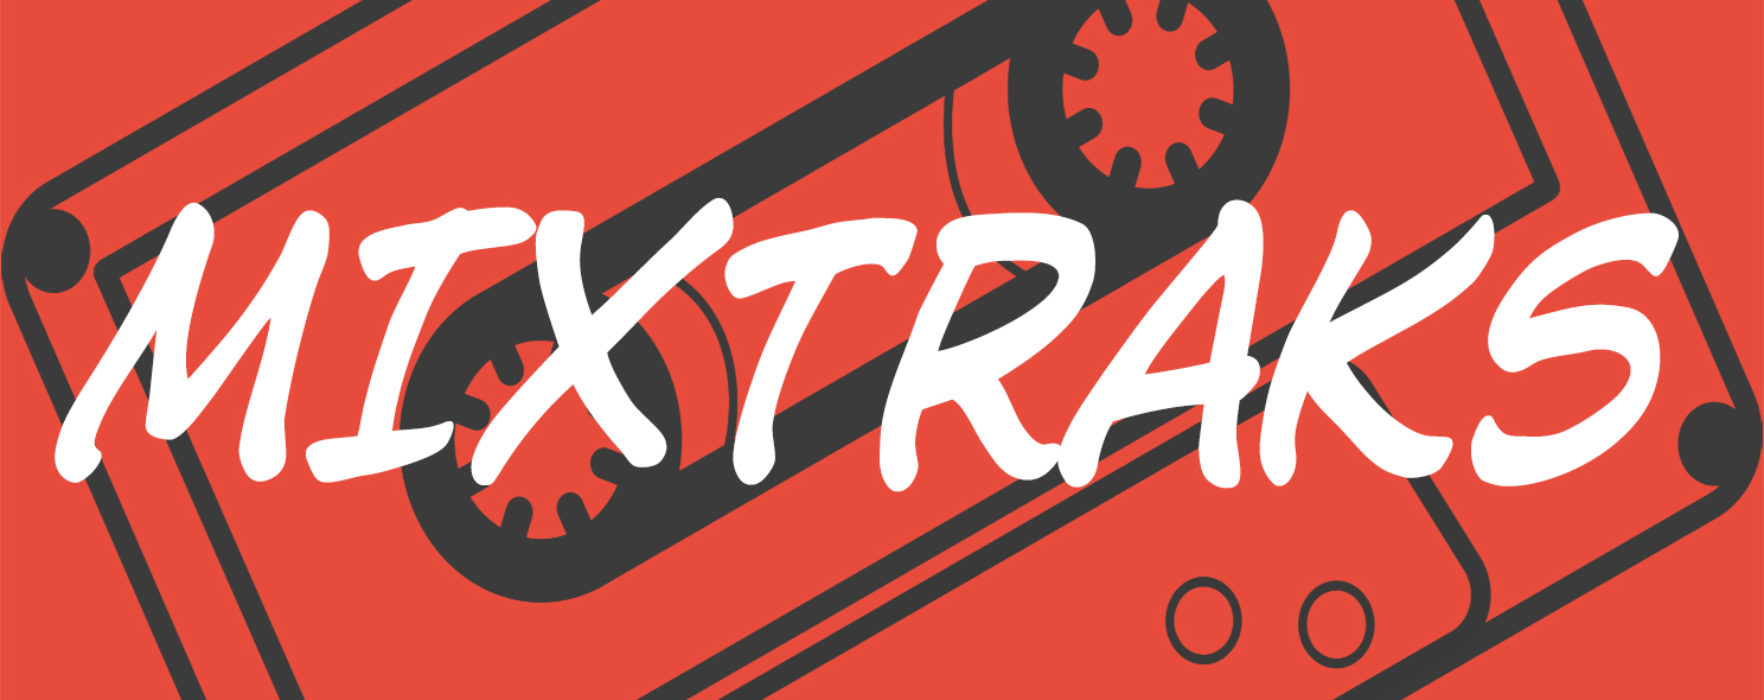 MIXTRAKS 74: la prima playlist dell'anno!